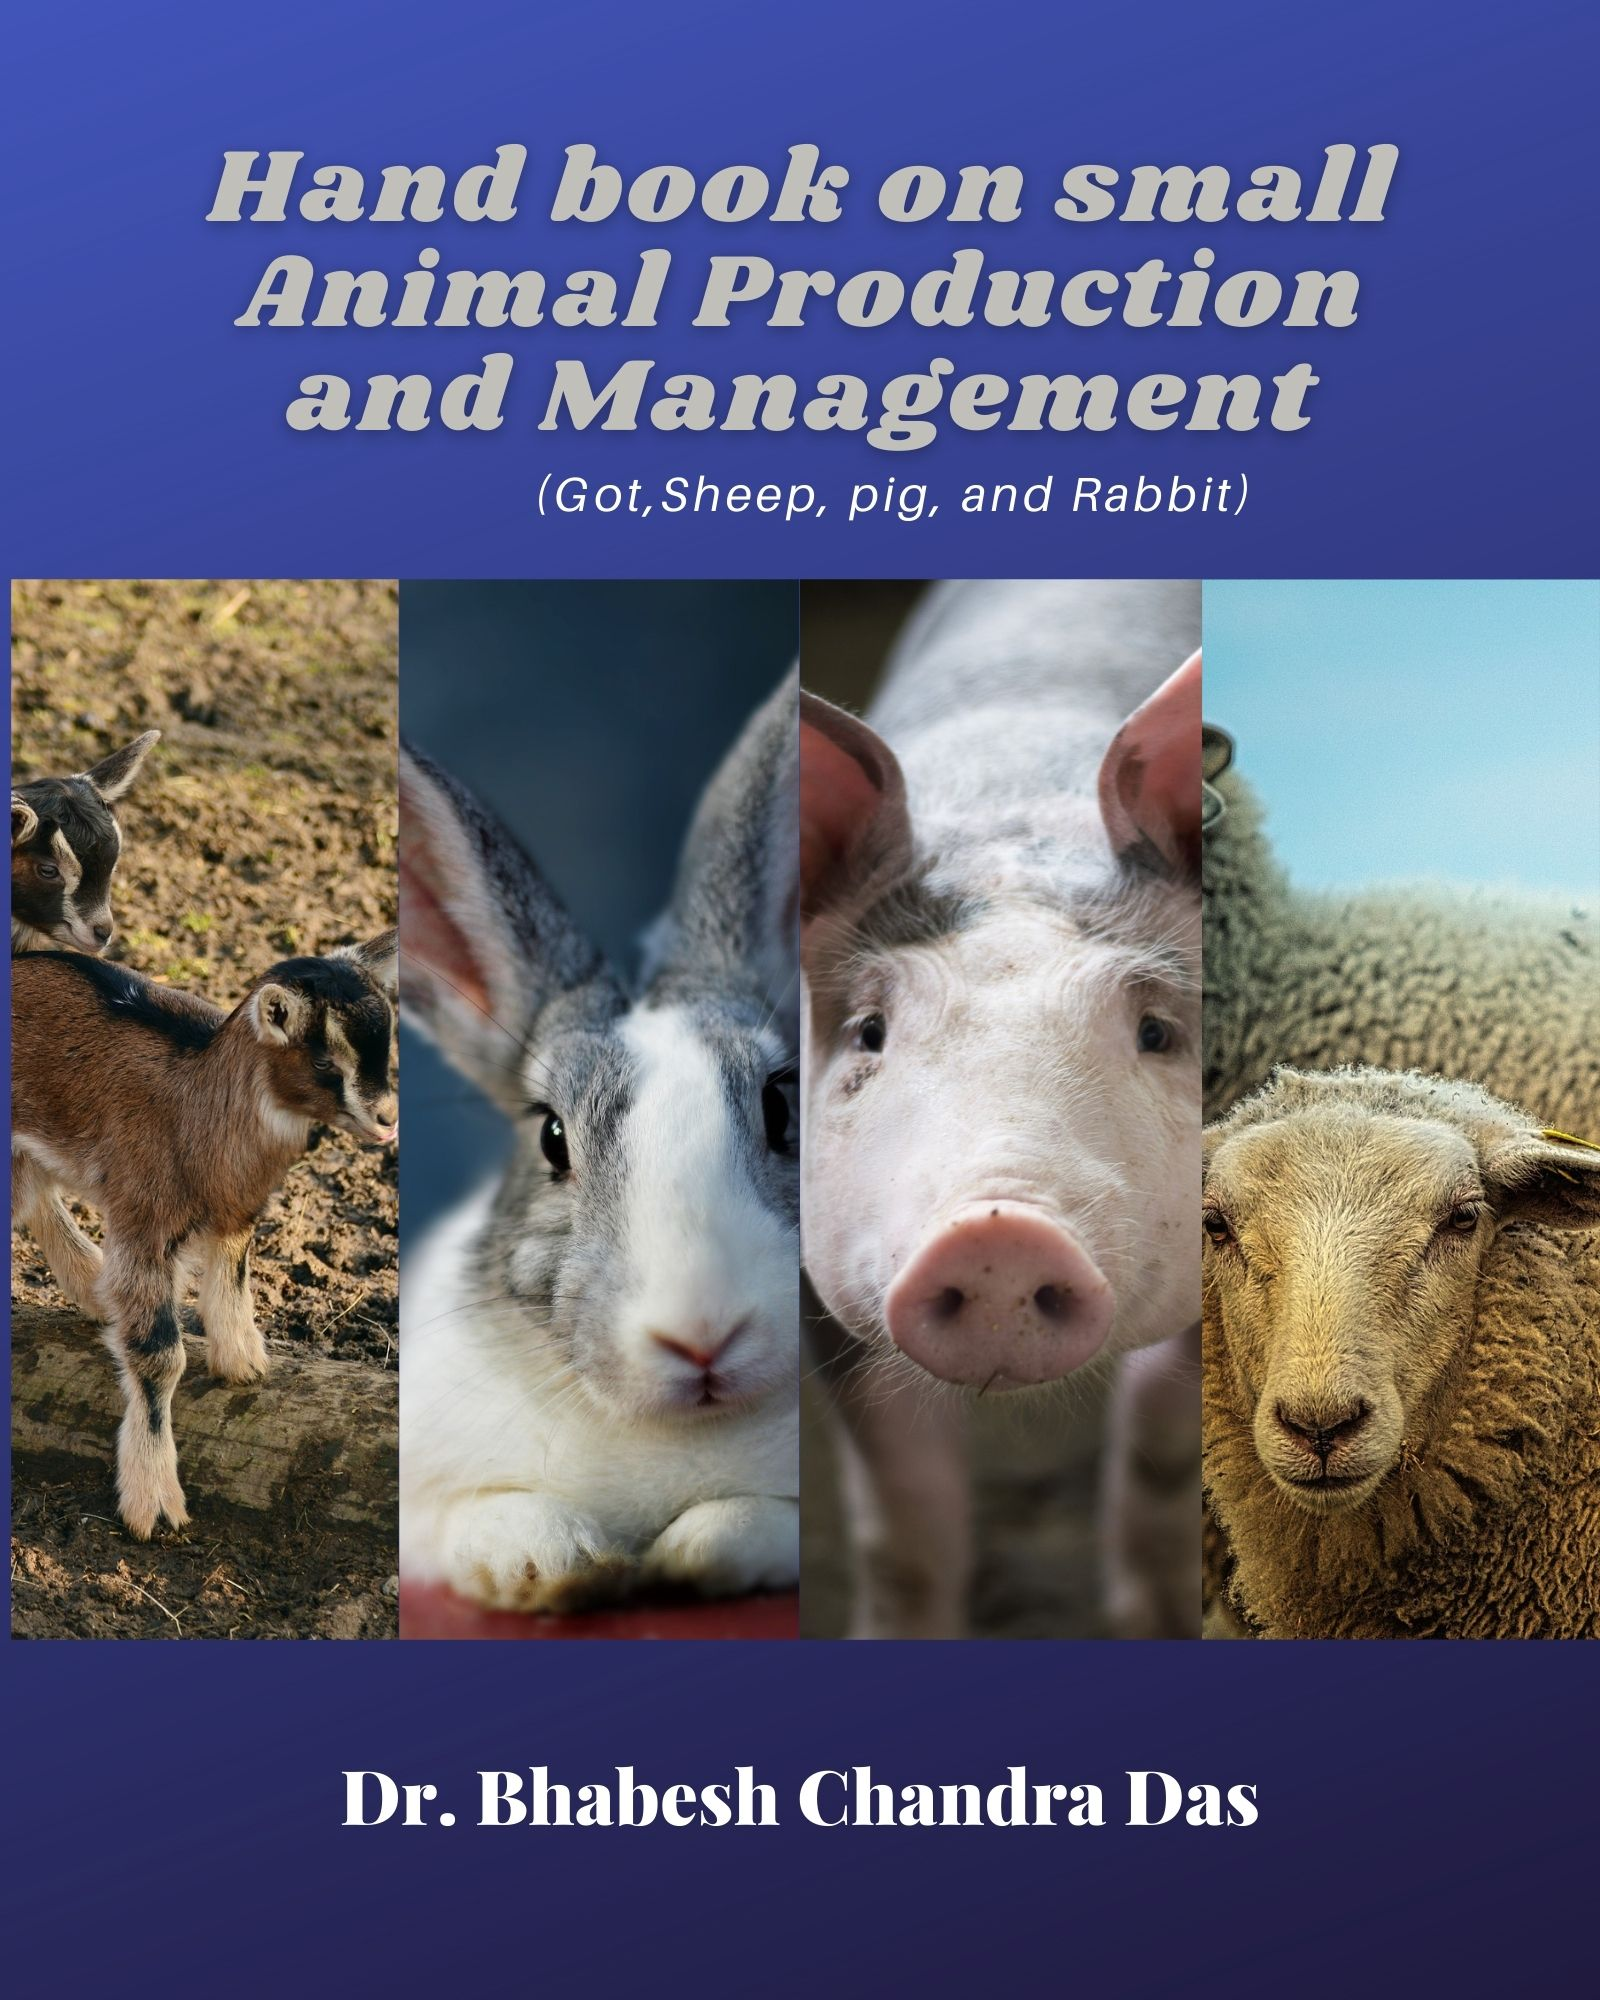 Hand book on Small Animal Production and Management (Goat, Sheep, Pig and Rabbit)